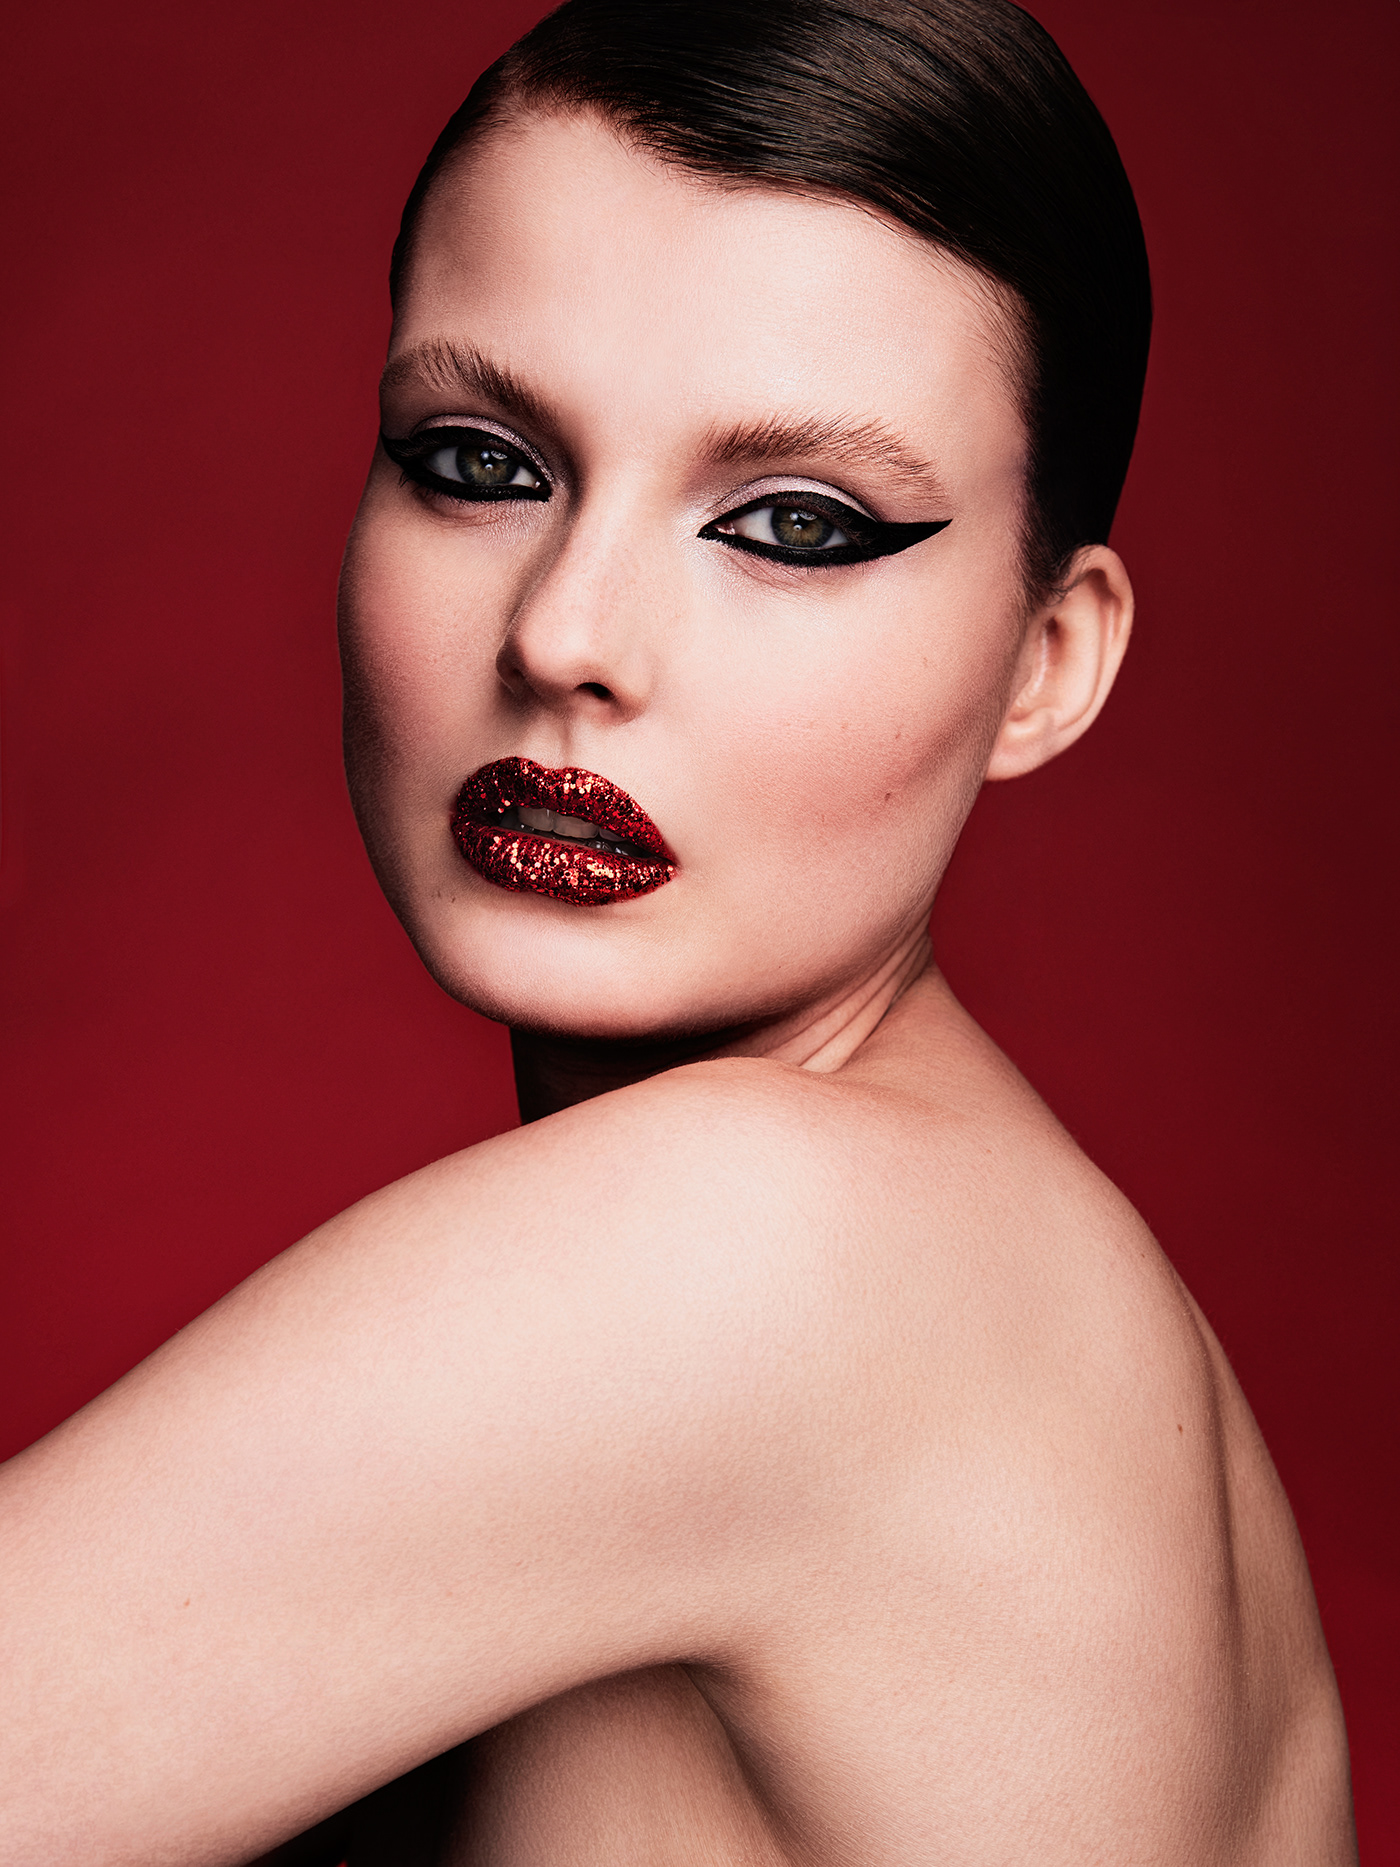 beauty beautyphotography makeup philippjelenska red studiophotography